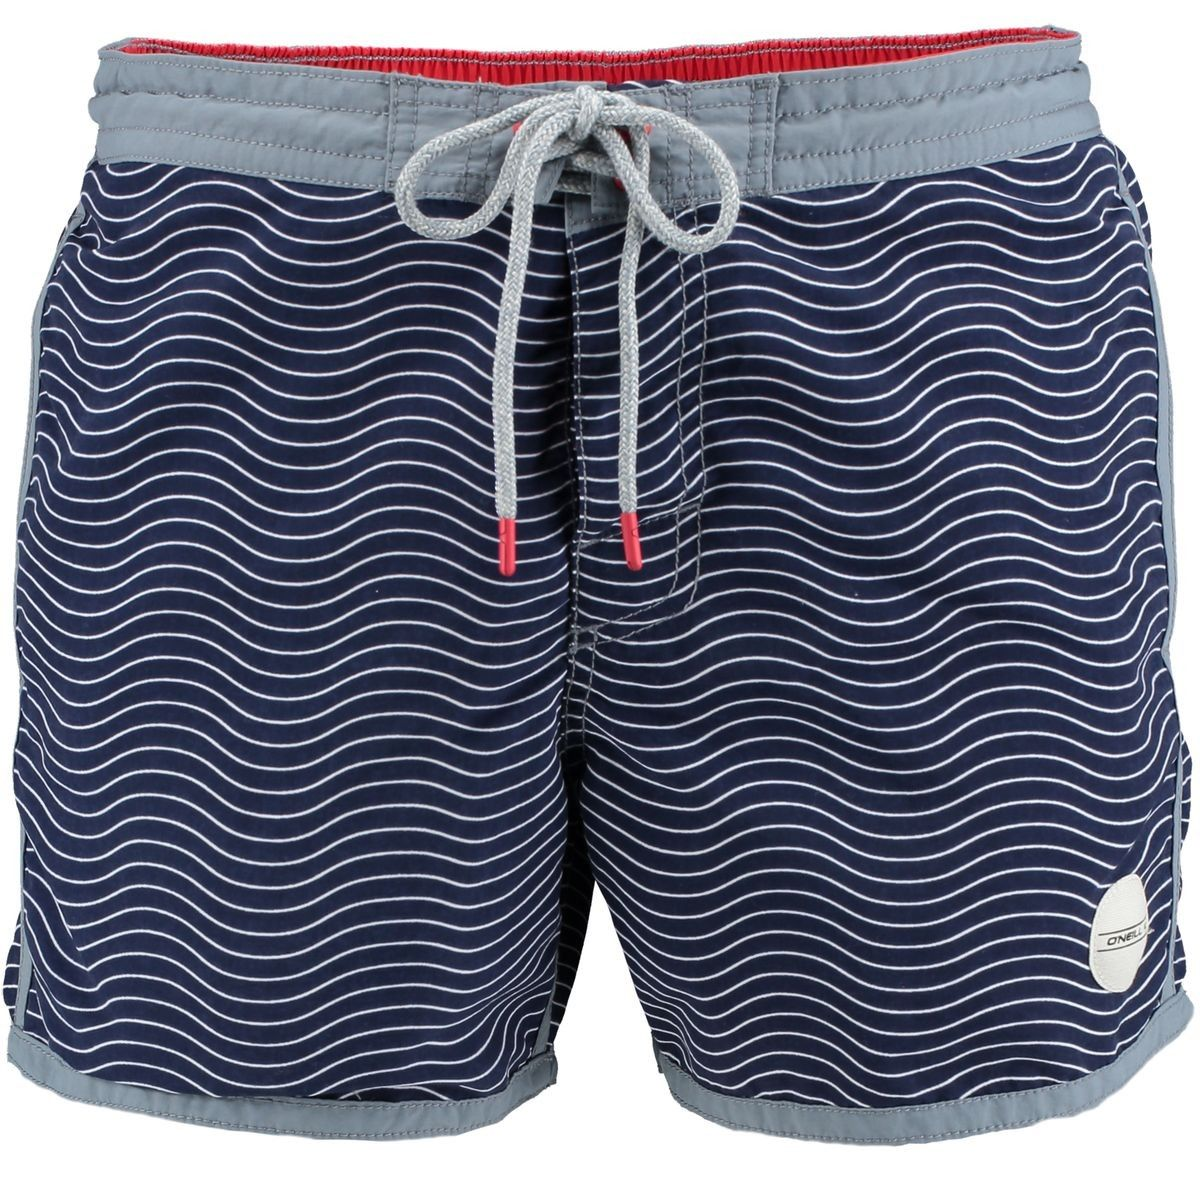 Mens Fashion Summer Frog Love Heart Beach Shorts Casual Short Pants